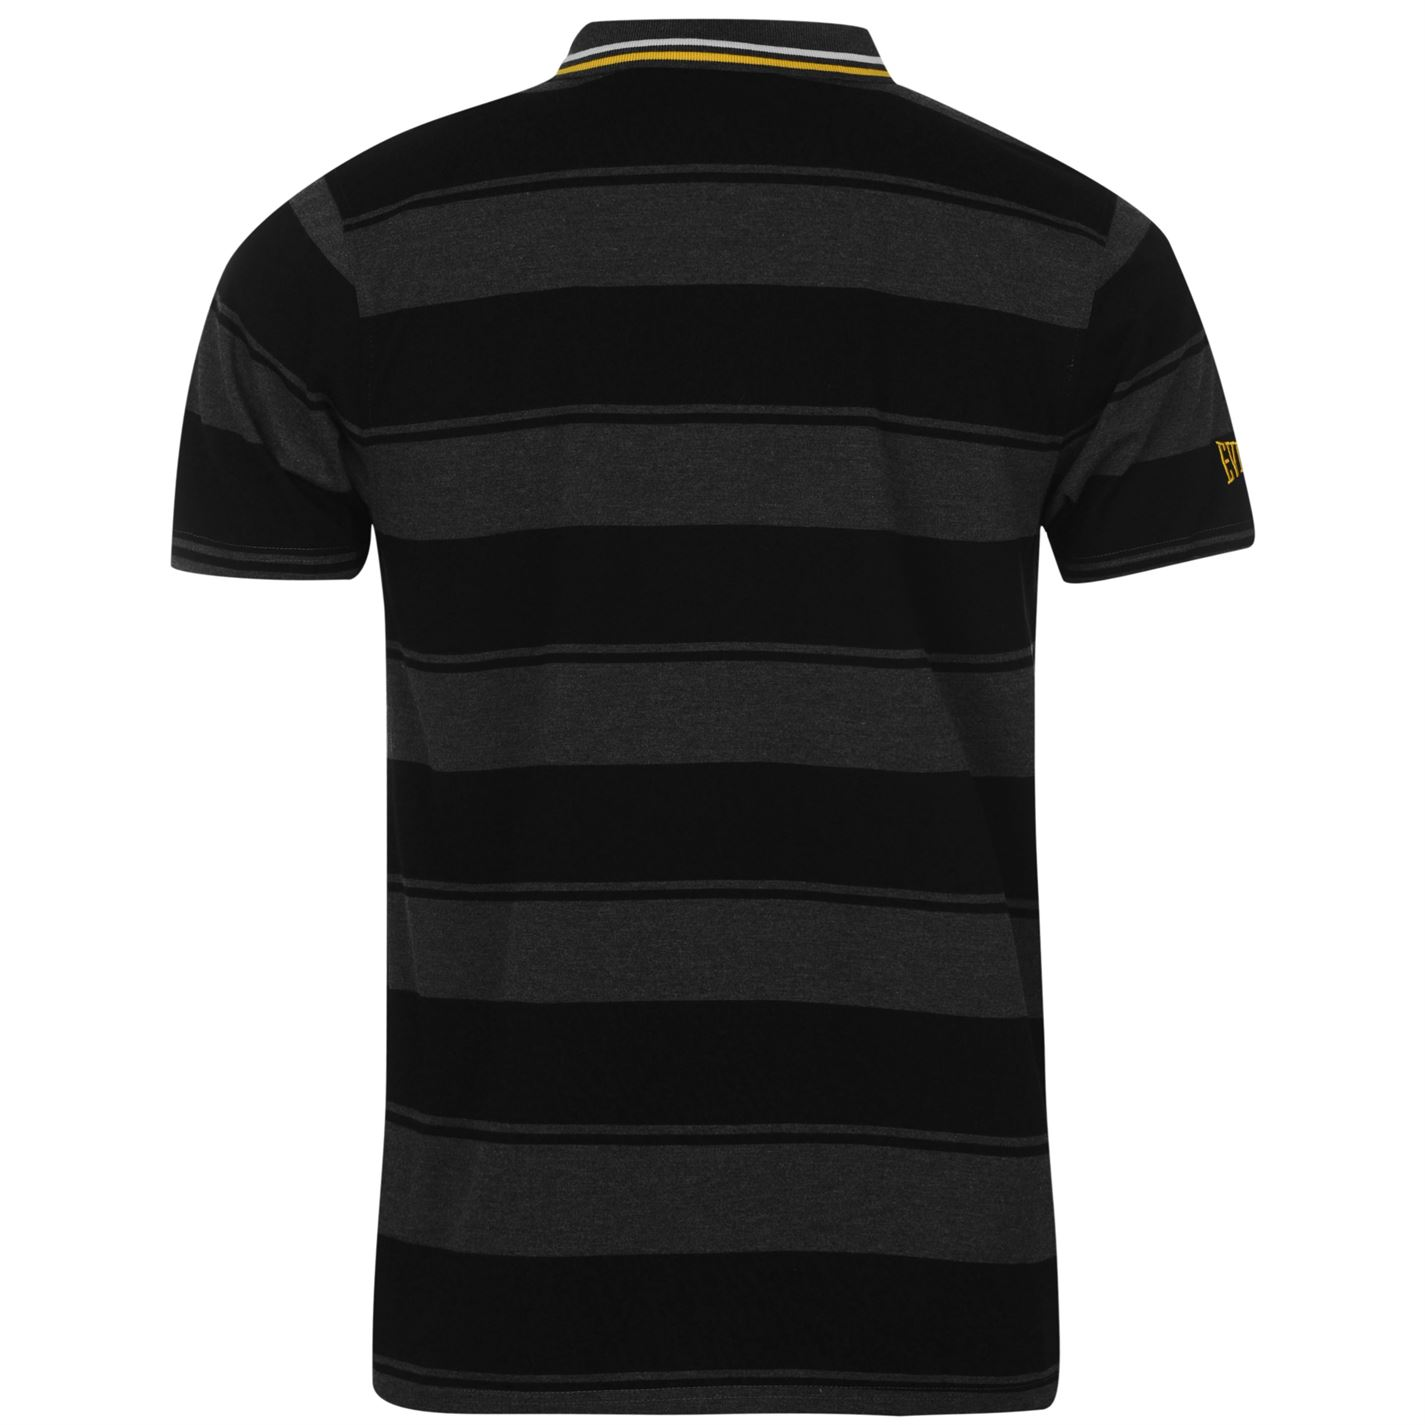 Everlast Mens Gents Yarn Dye Bold Stripe Polo Short Sleeve Sports Casual Tee